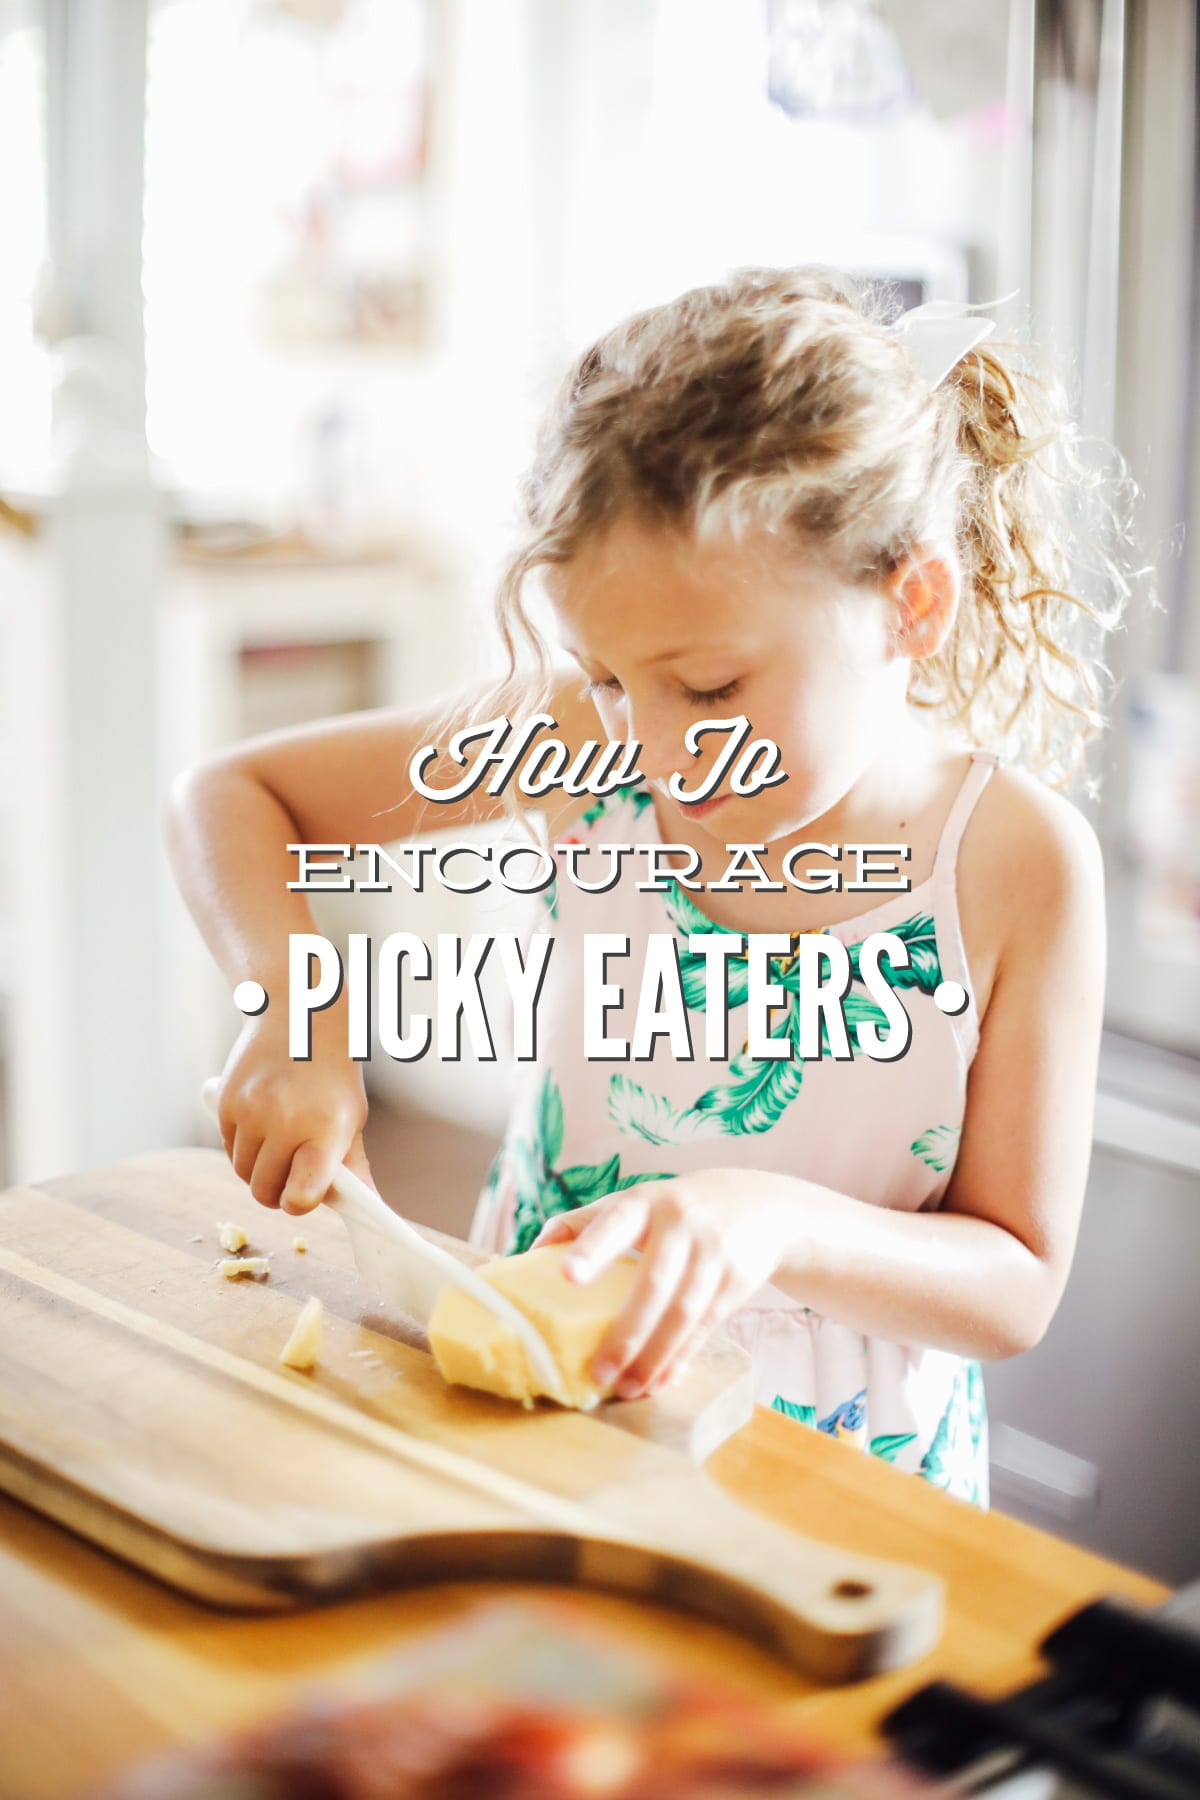 Picky Eaters: How to Encourage Exploration and Open-Mindedness with Food (Plus, Recipes to Encourage Exploration)